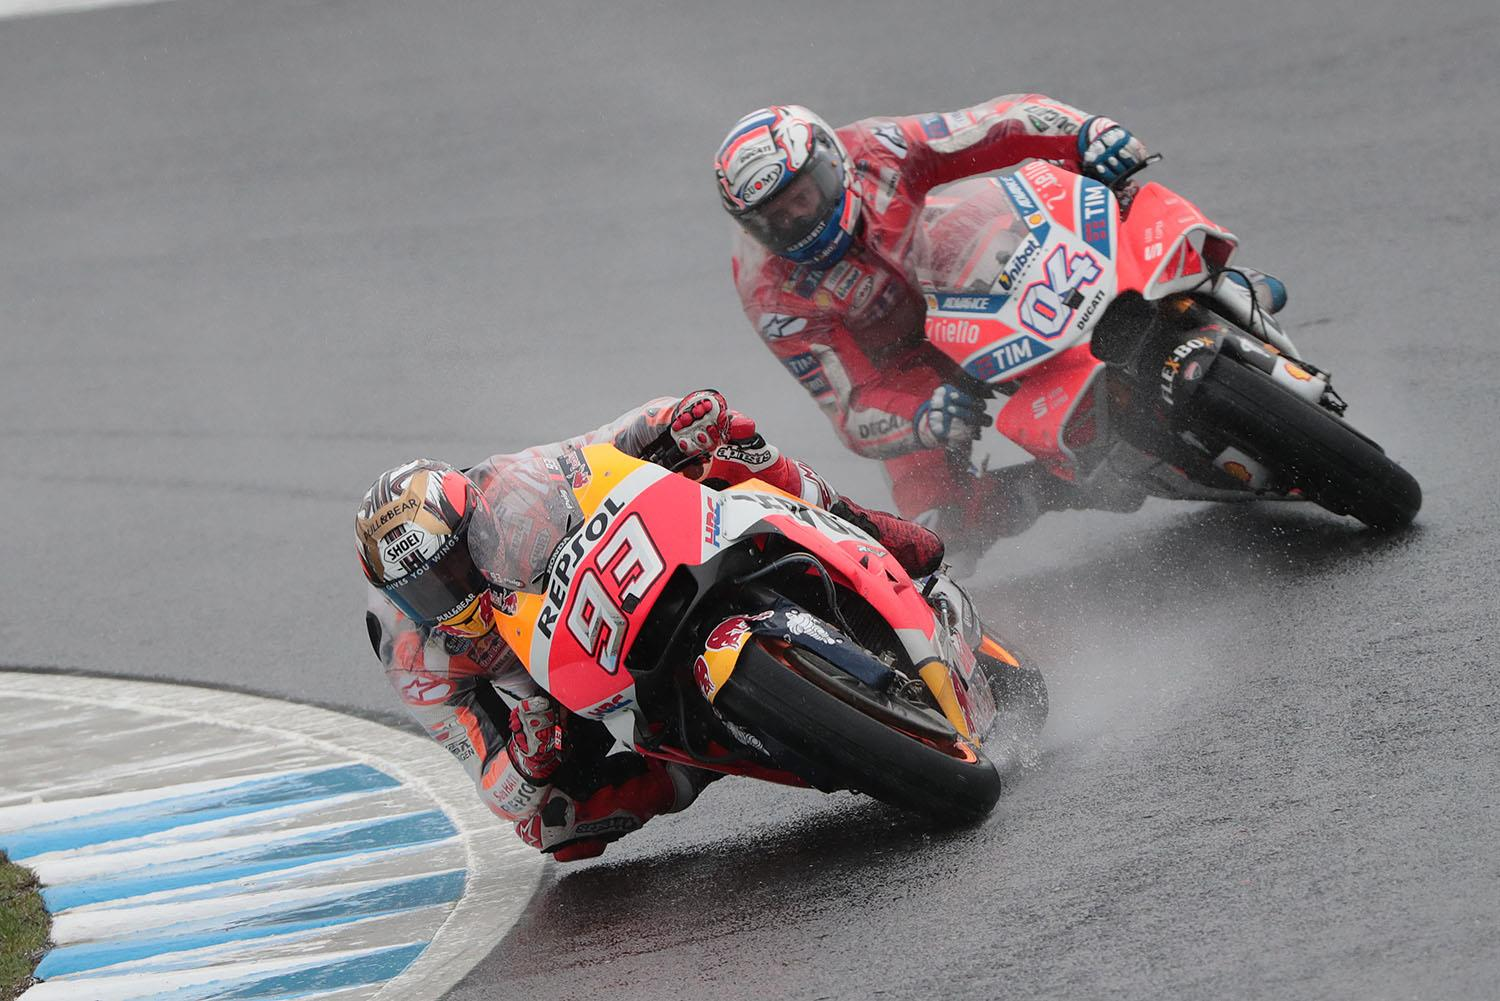 Dovizioso wins Malaysia MotoGP to extend title fight